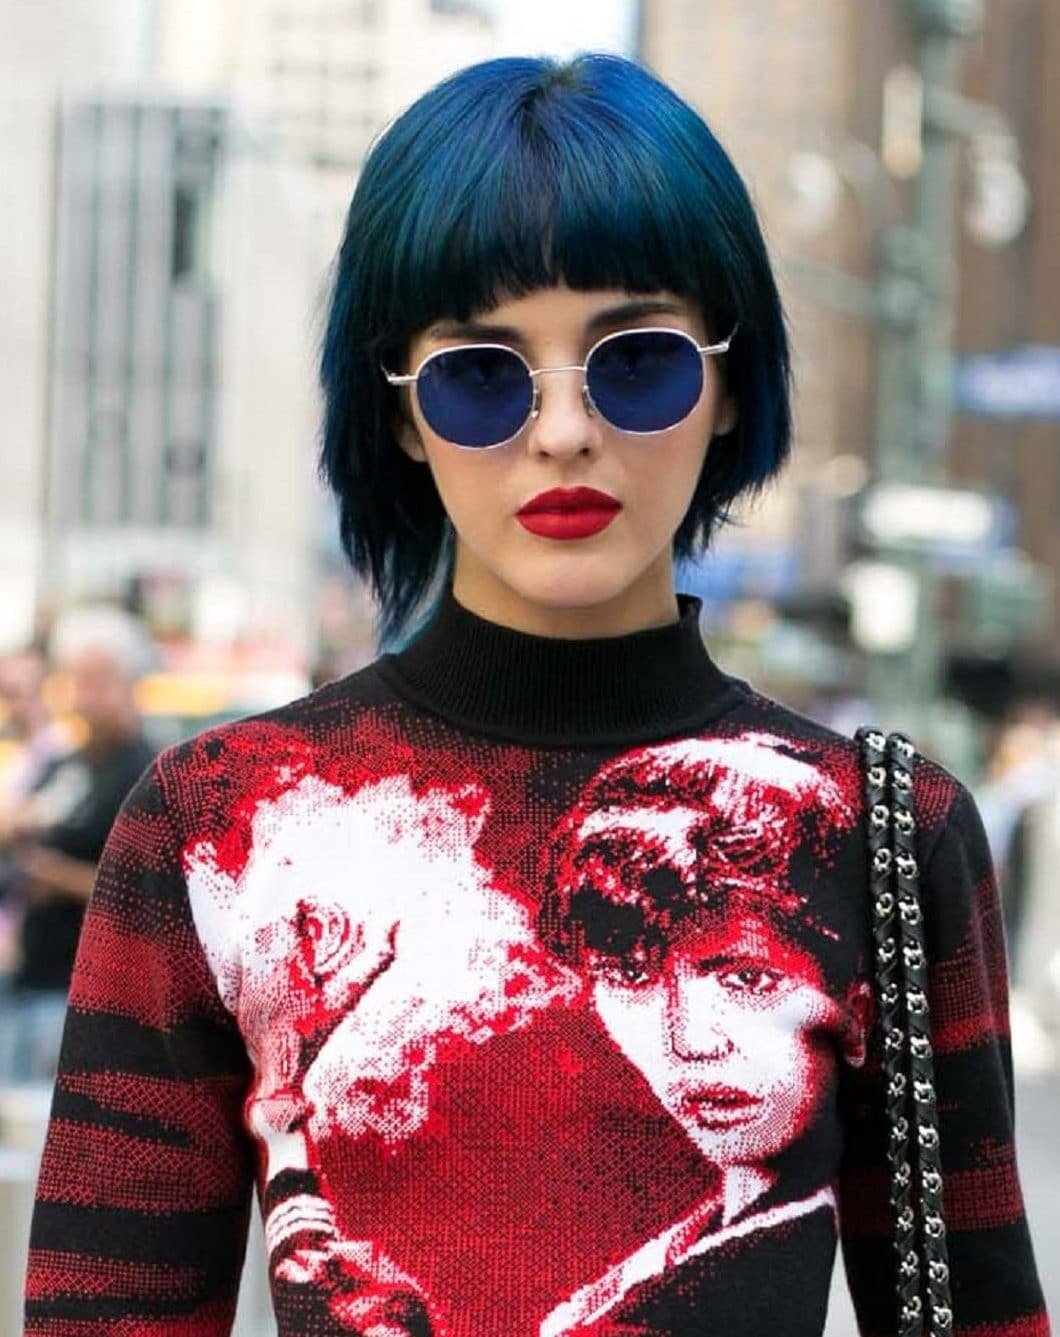 Hair Color For Short Hair Bold Choices For You To Choose